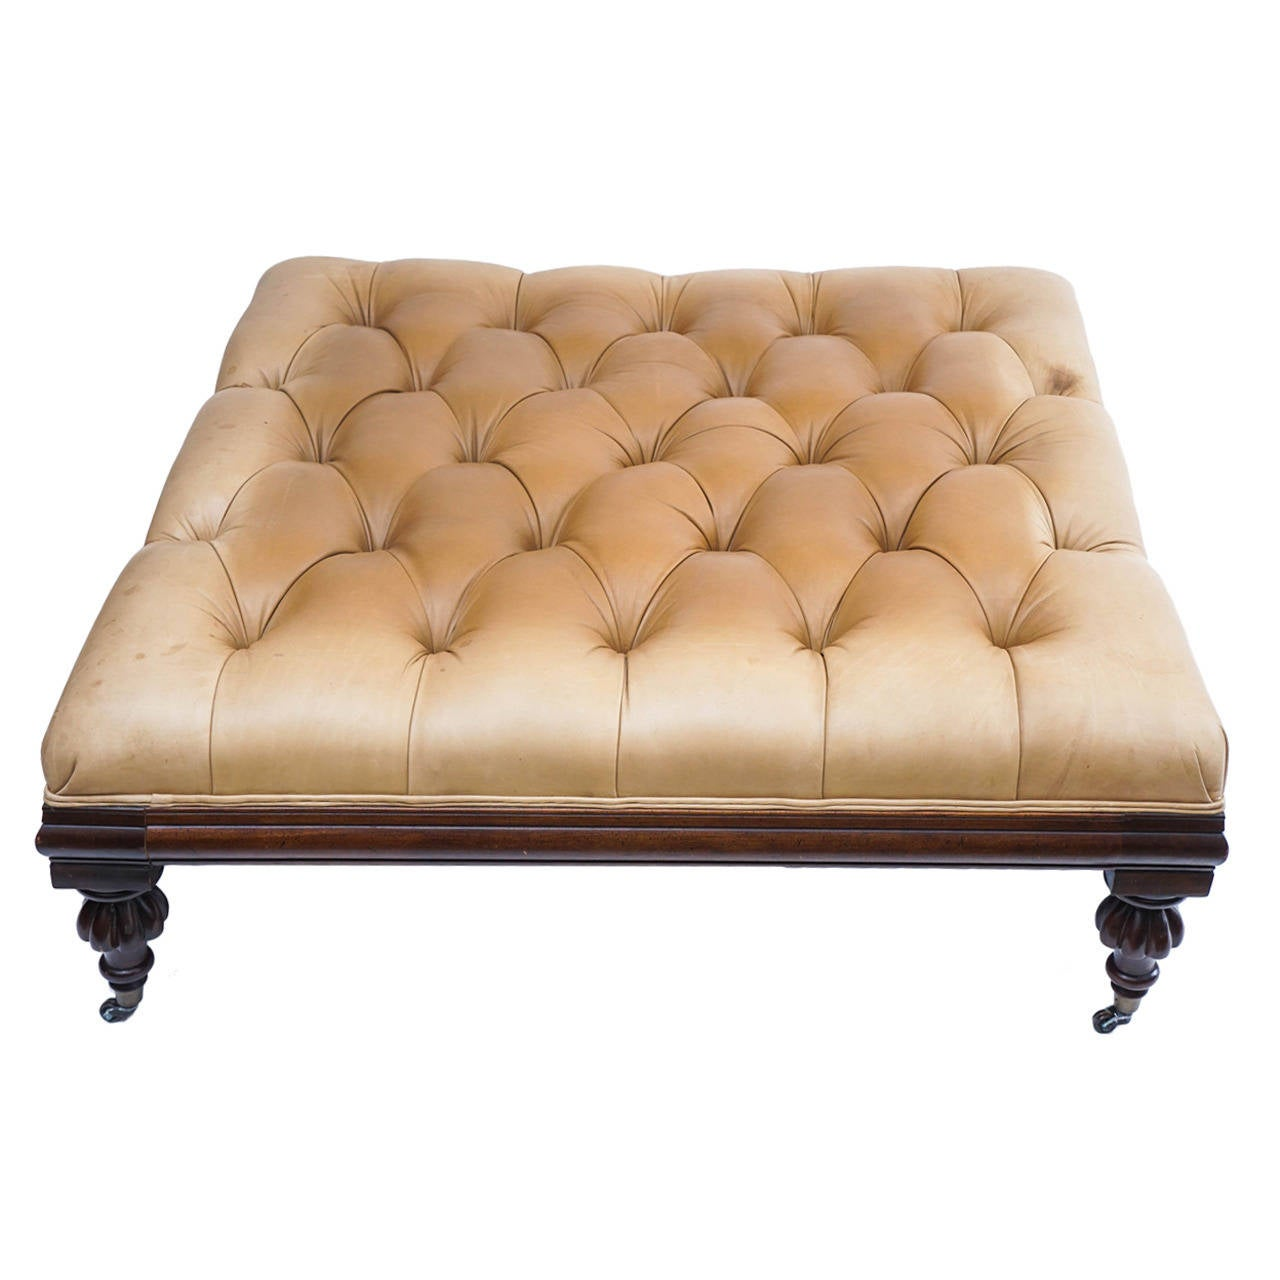 Large henredon leather ottoman or coffee table with traditional casters at 1stdibs Large ottoman coffee table